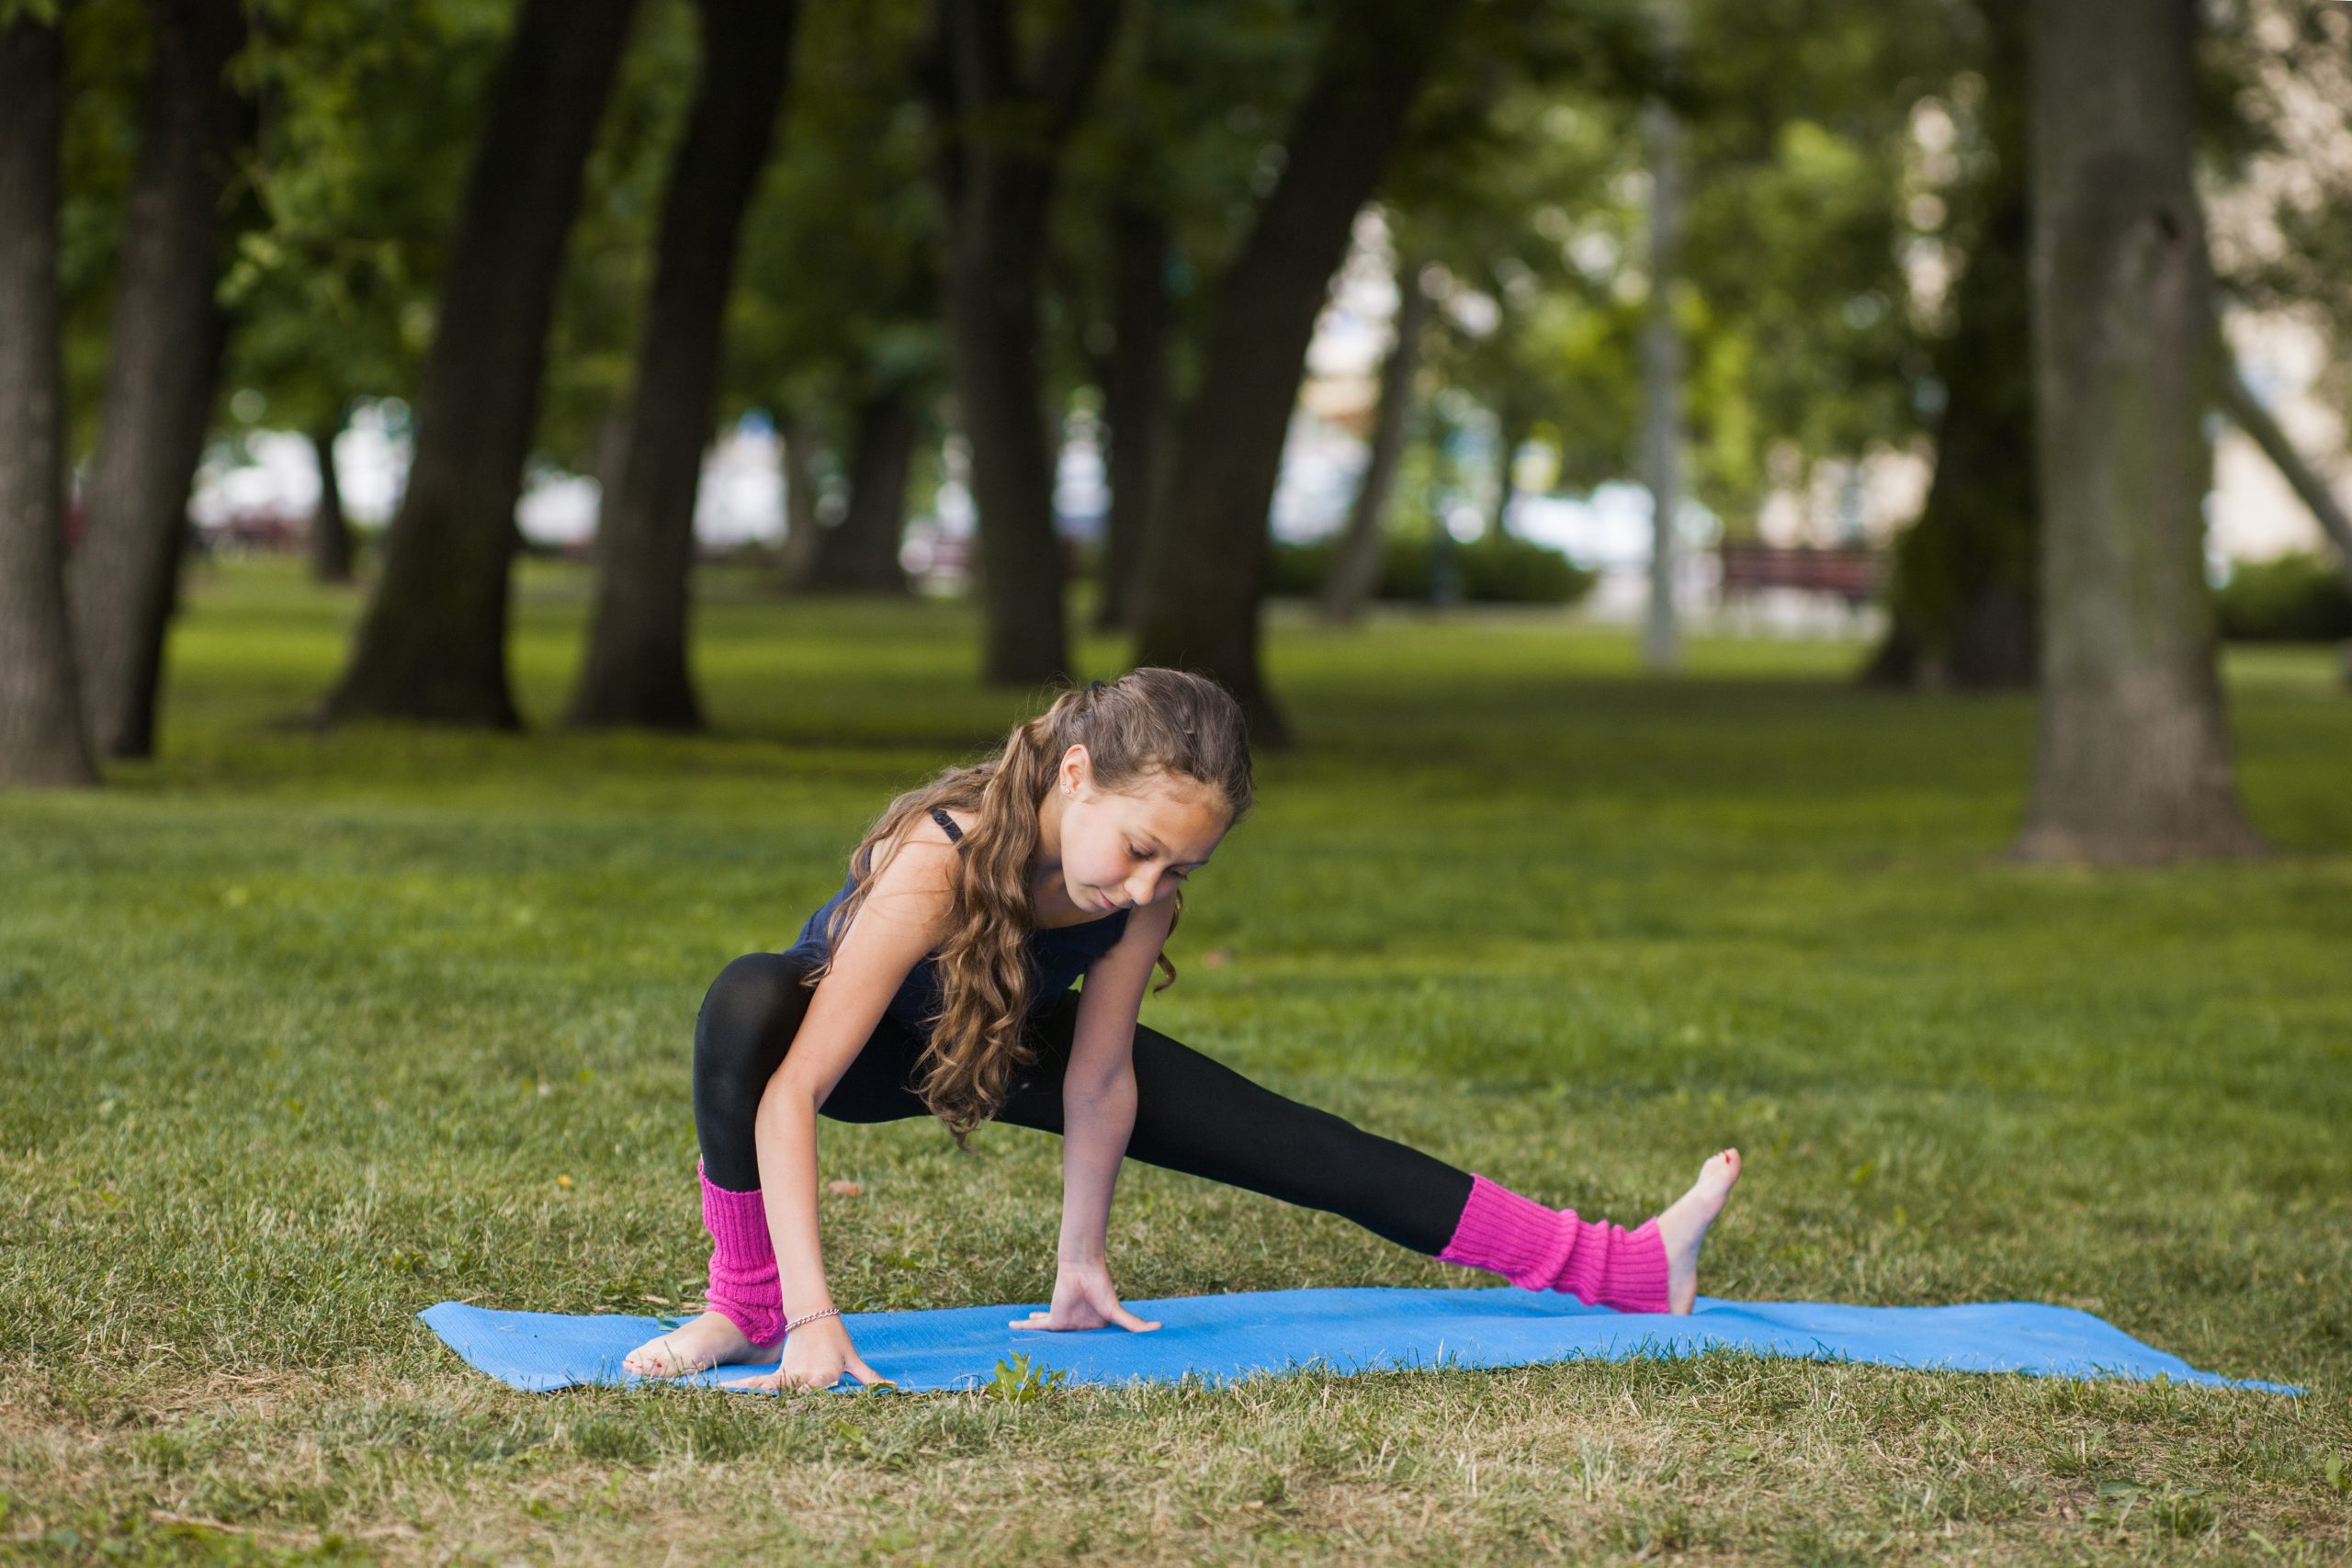 Teenage healthy lifestyle. Gymnastics exercises. Strong body for young girl, nature background. Happy sport life outdoors, fitness workout